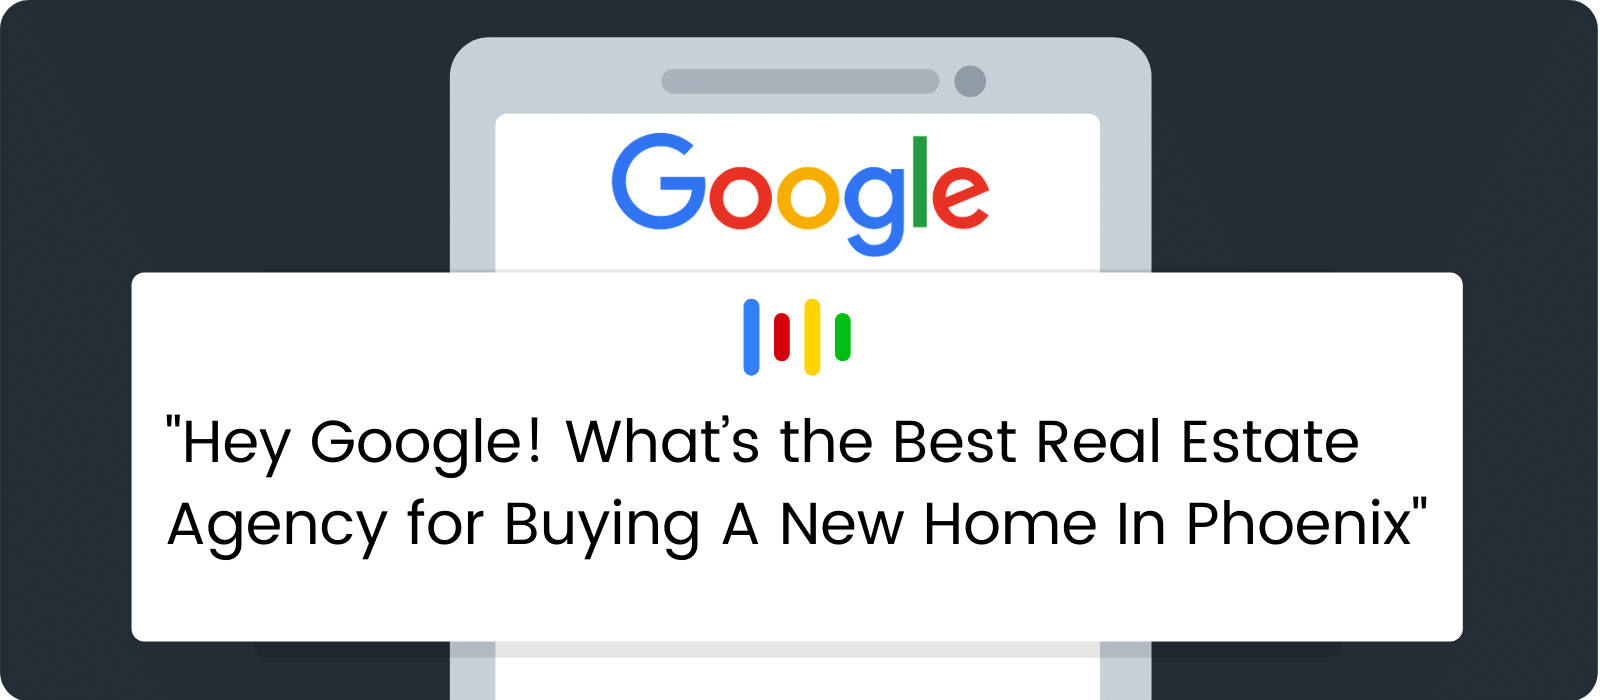 Hey Google! What's the Best Real Estate Agency for Buying A New Home In Phoenix